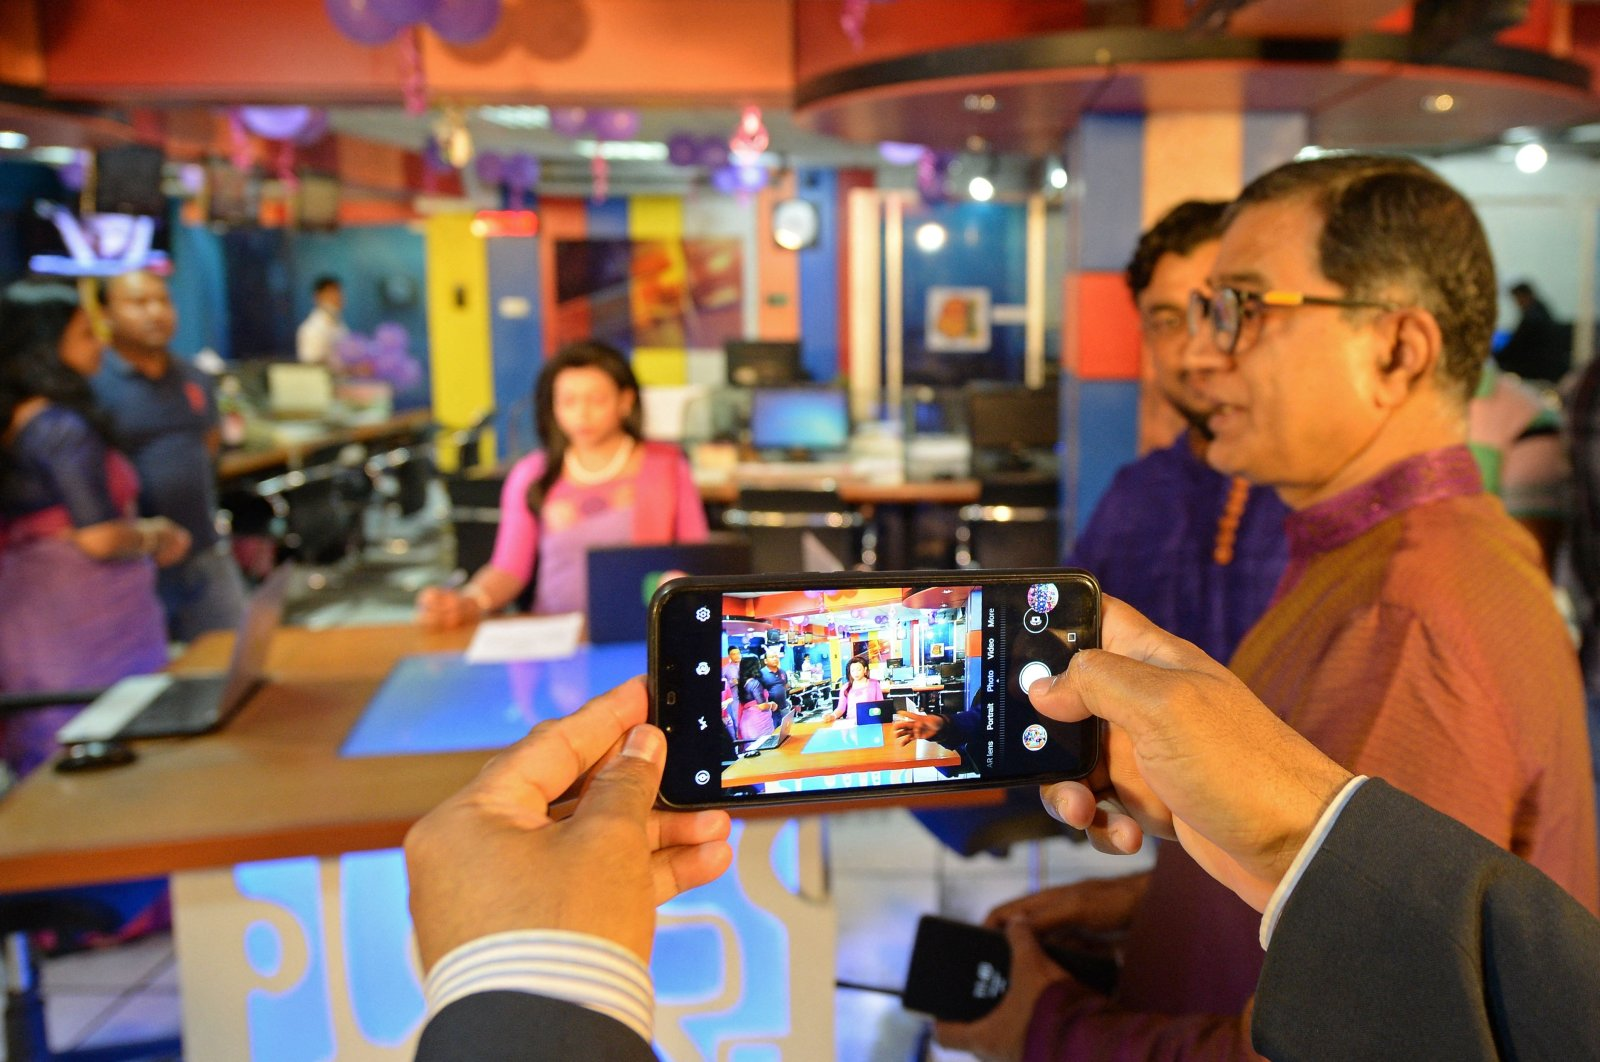 A co-worker of Tashnuva Anan Shishir who claims to be Bangladesh's first transgender television news presenter takes her photograph using a mobile phone at a news studio in Dhaka on March 8, 2021. (AFP Photo)